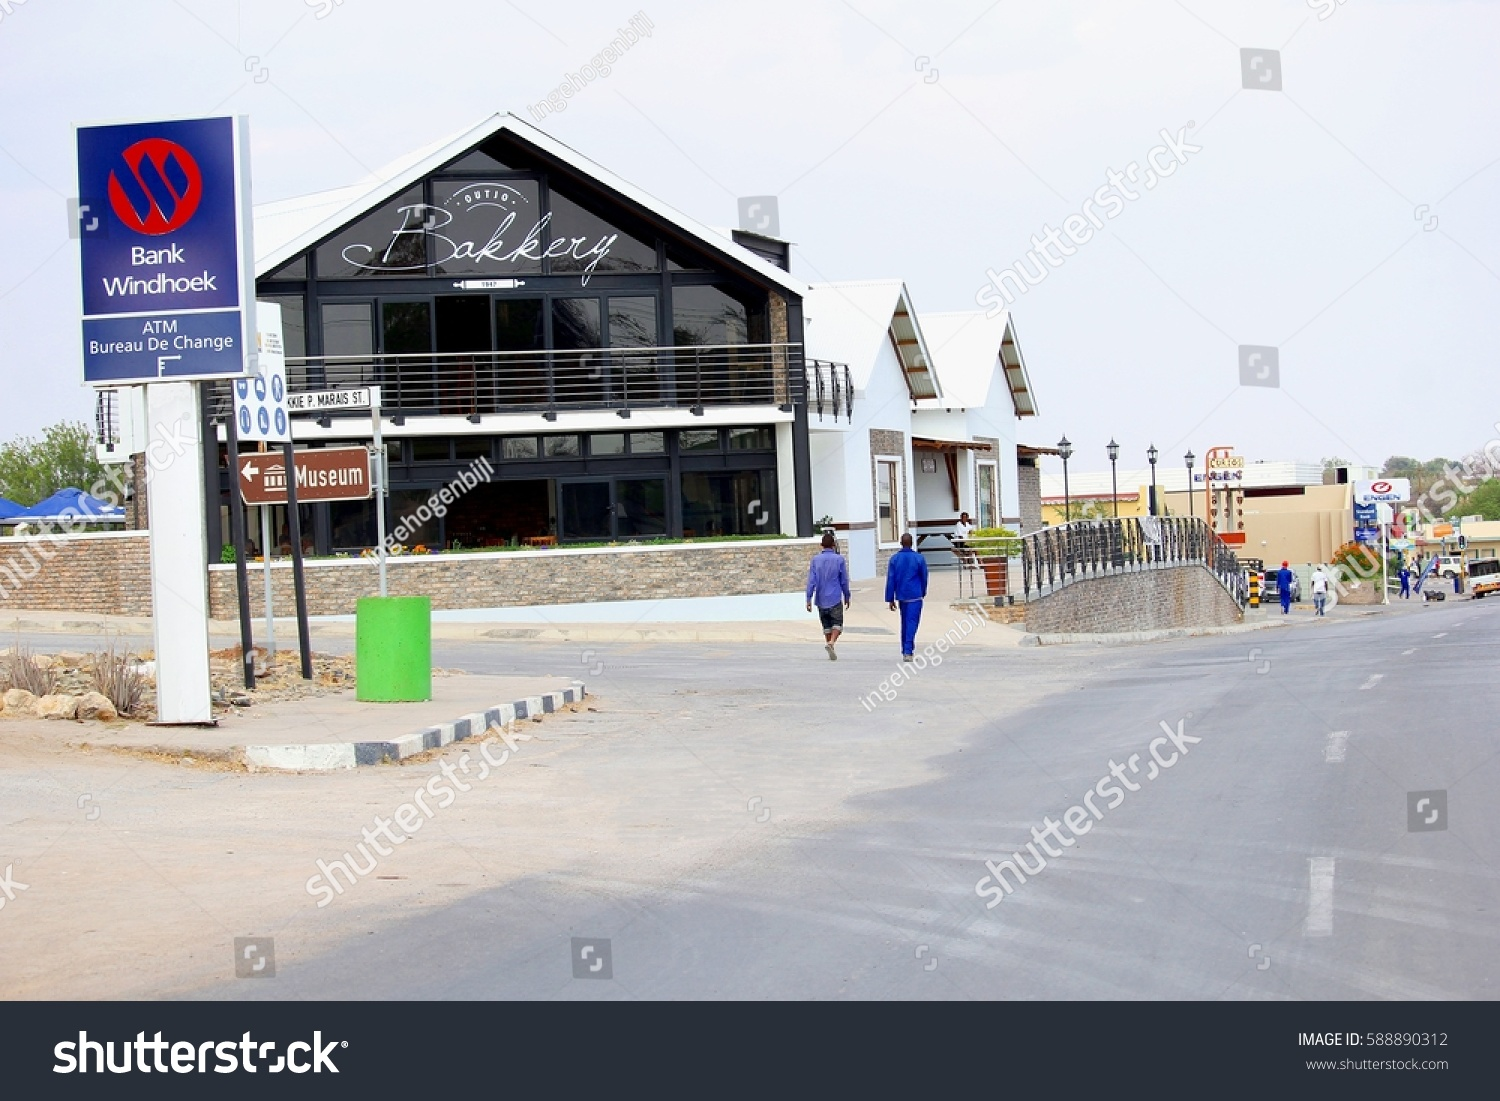 Bureau De Change Old Street outjo namibia africa october 17 2016 stock photo (edit now